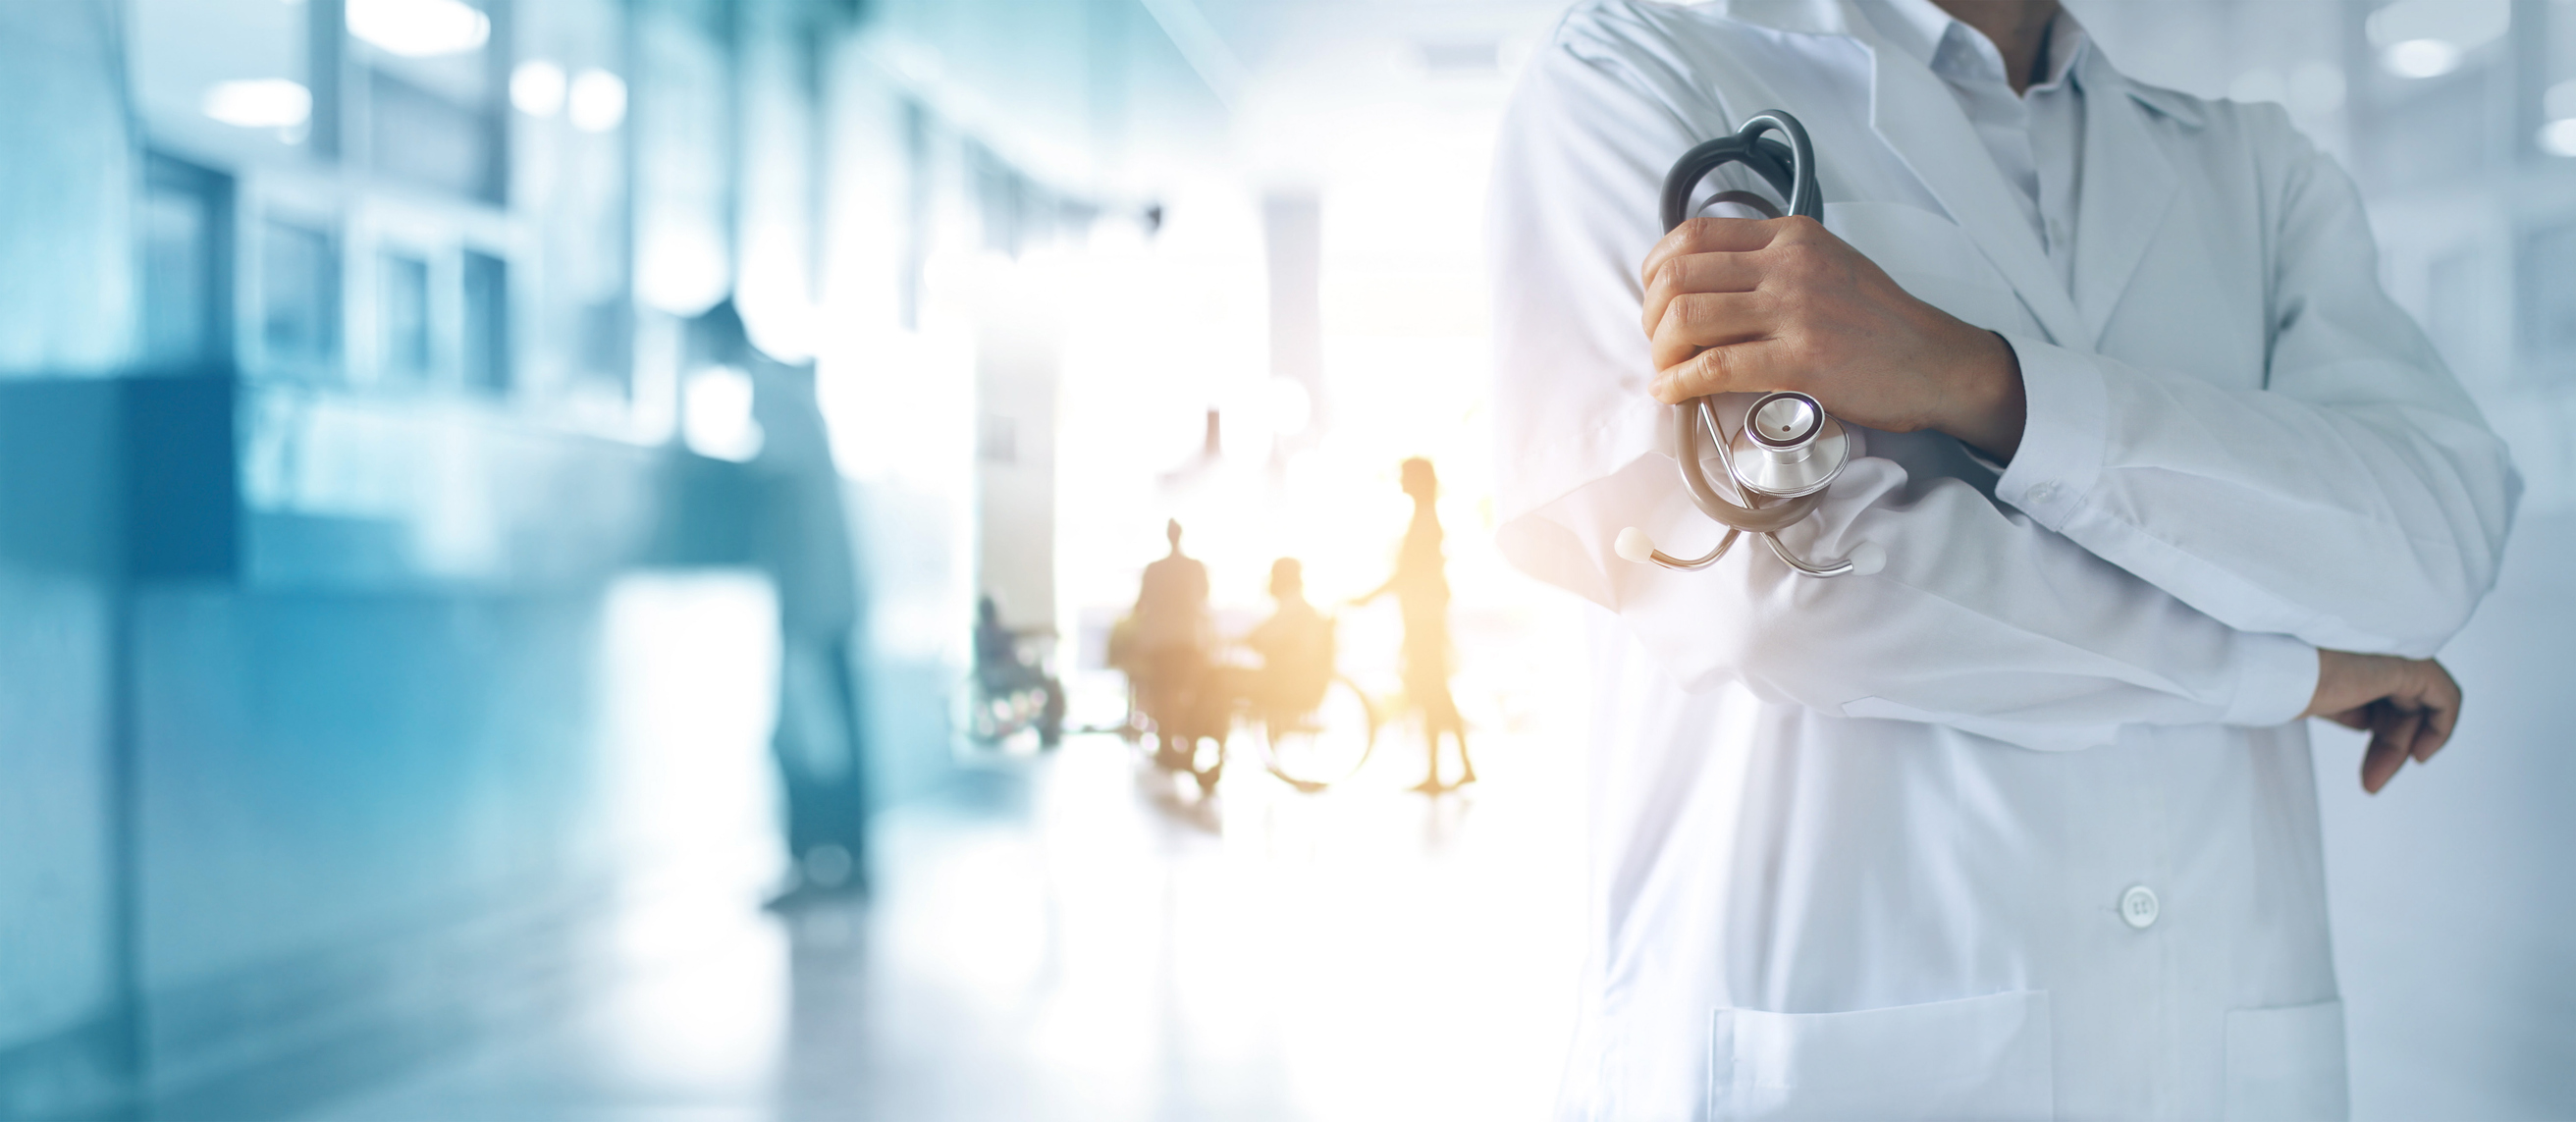 Healthcare-and-medical-concept--Medicine-doctor-with-stethoscope-in-hand-and-Patients-come-to-the-hospital-background--1023224308_2630x1145.jpeg